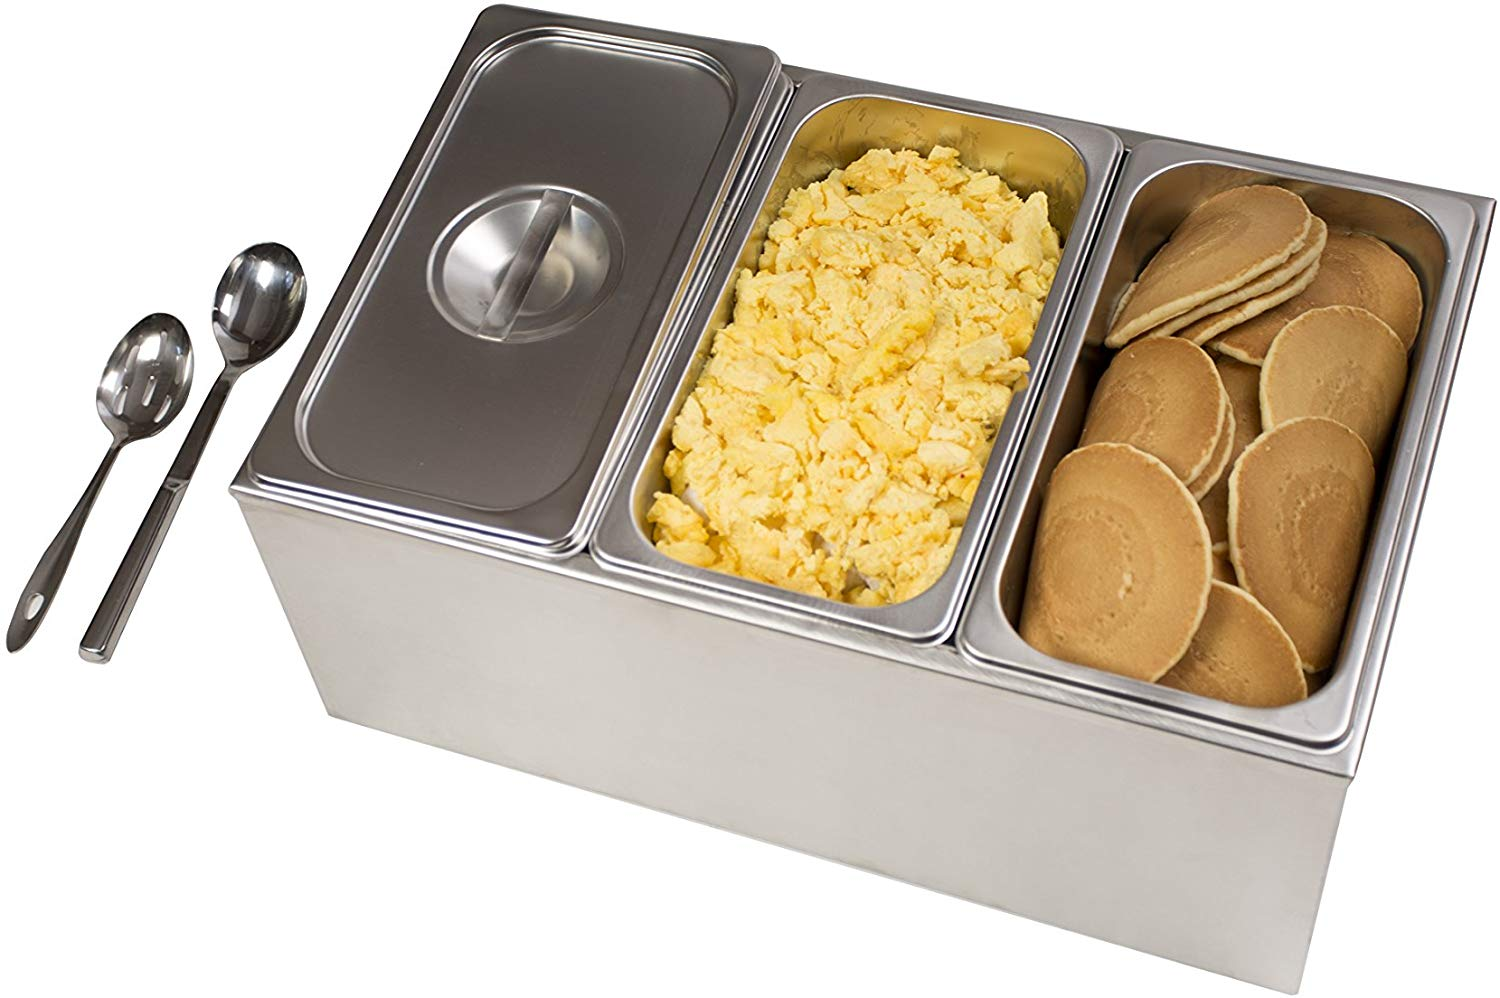 SYBO Commercial Food Warmer For Restaurants And Catering